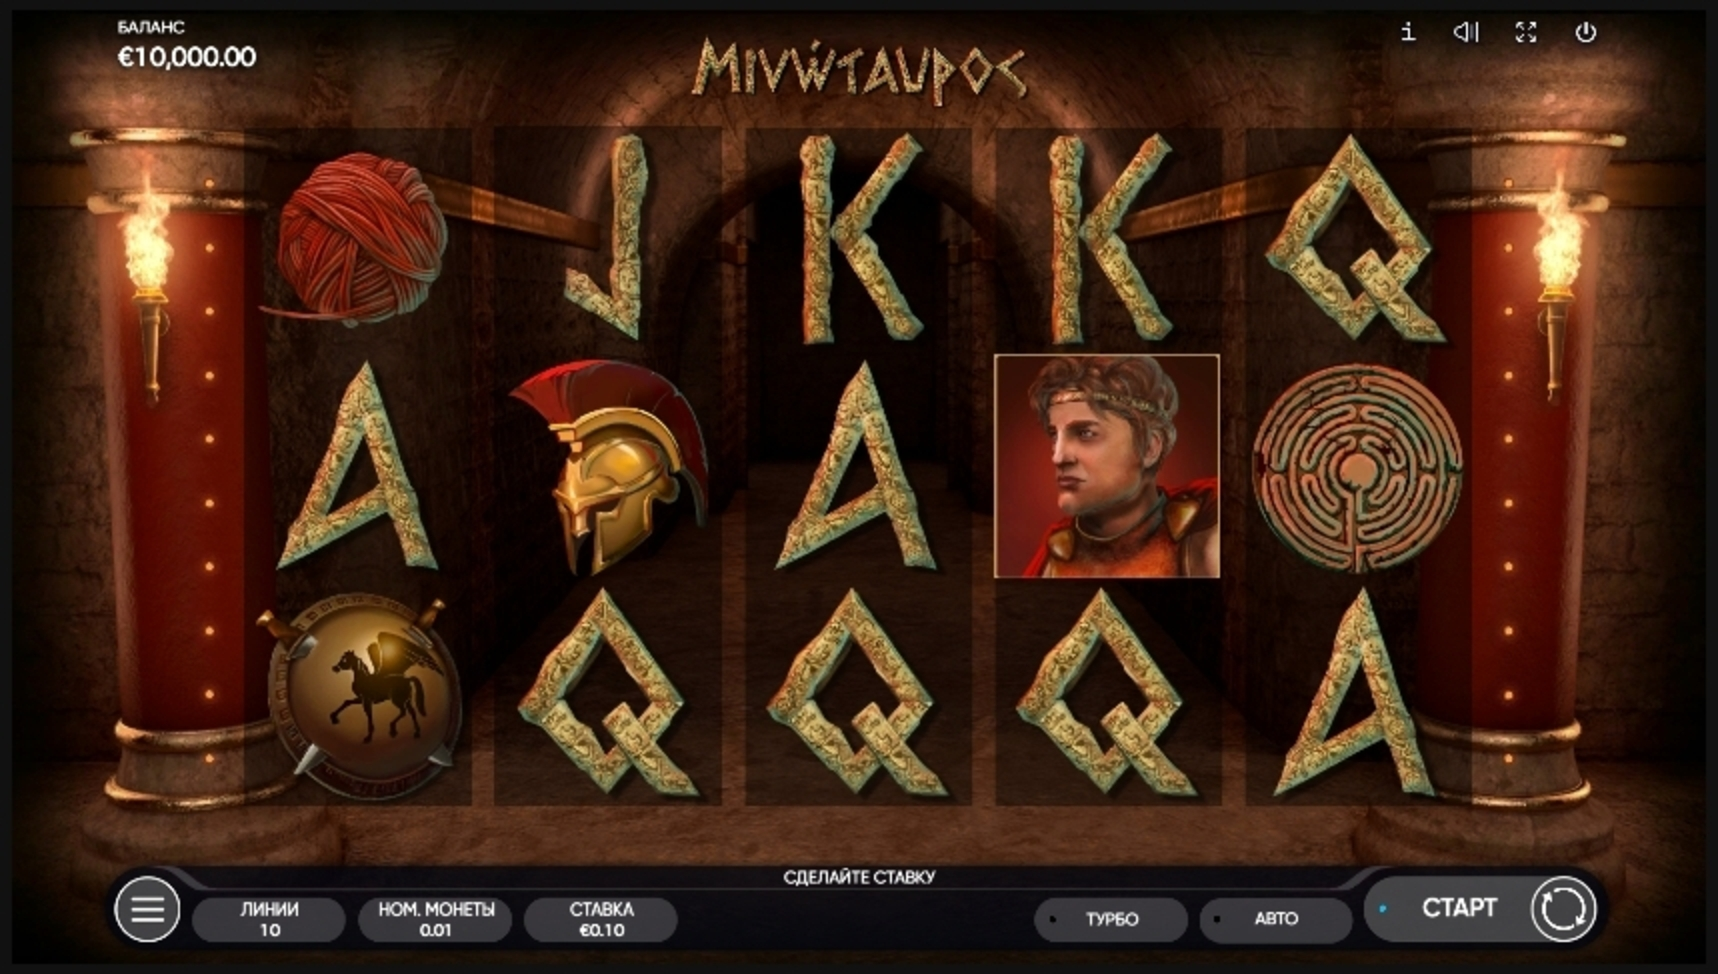 Reels in Minotaurus Slot Game by Endorphina